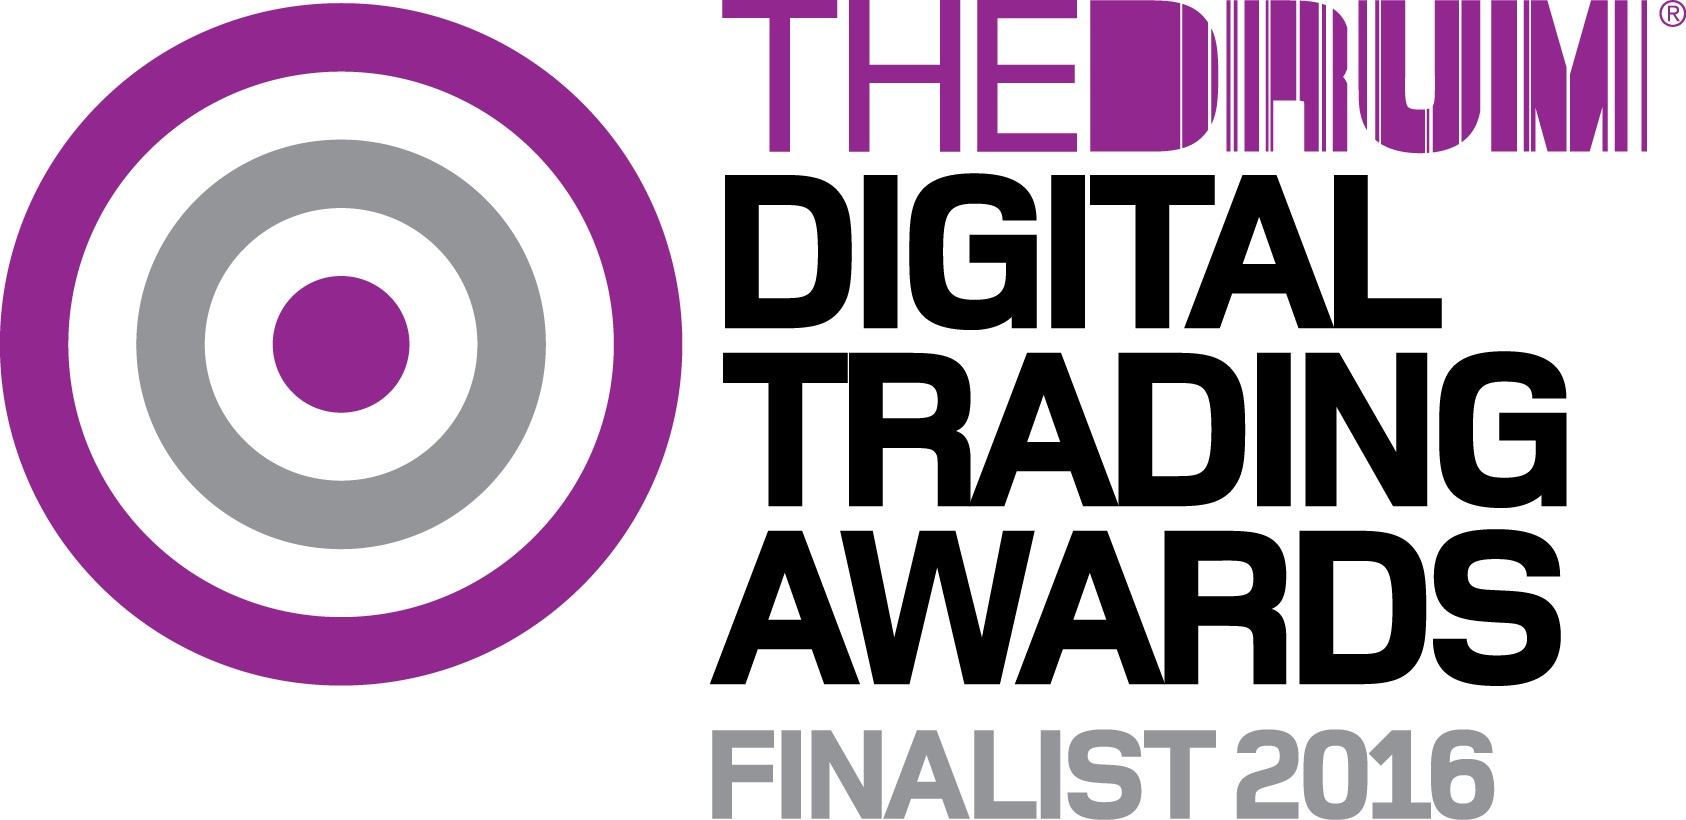 Drum Digital Trading Awards - Finalist